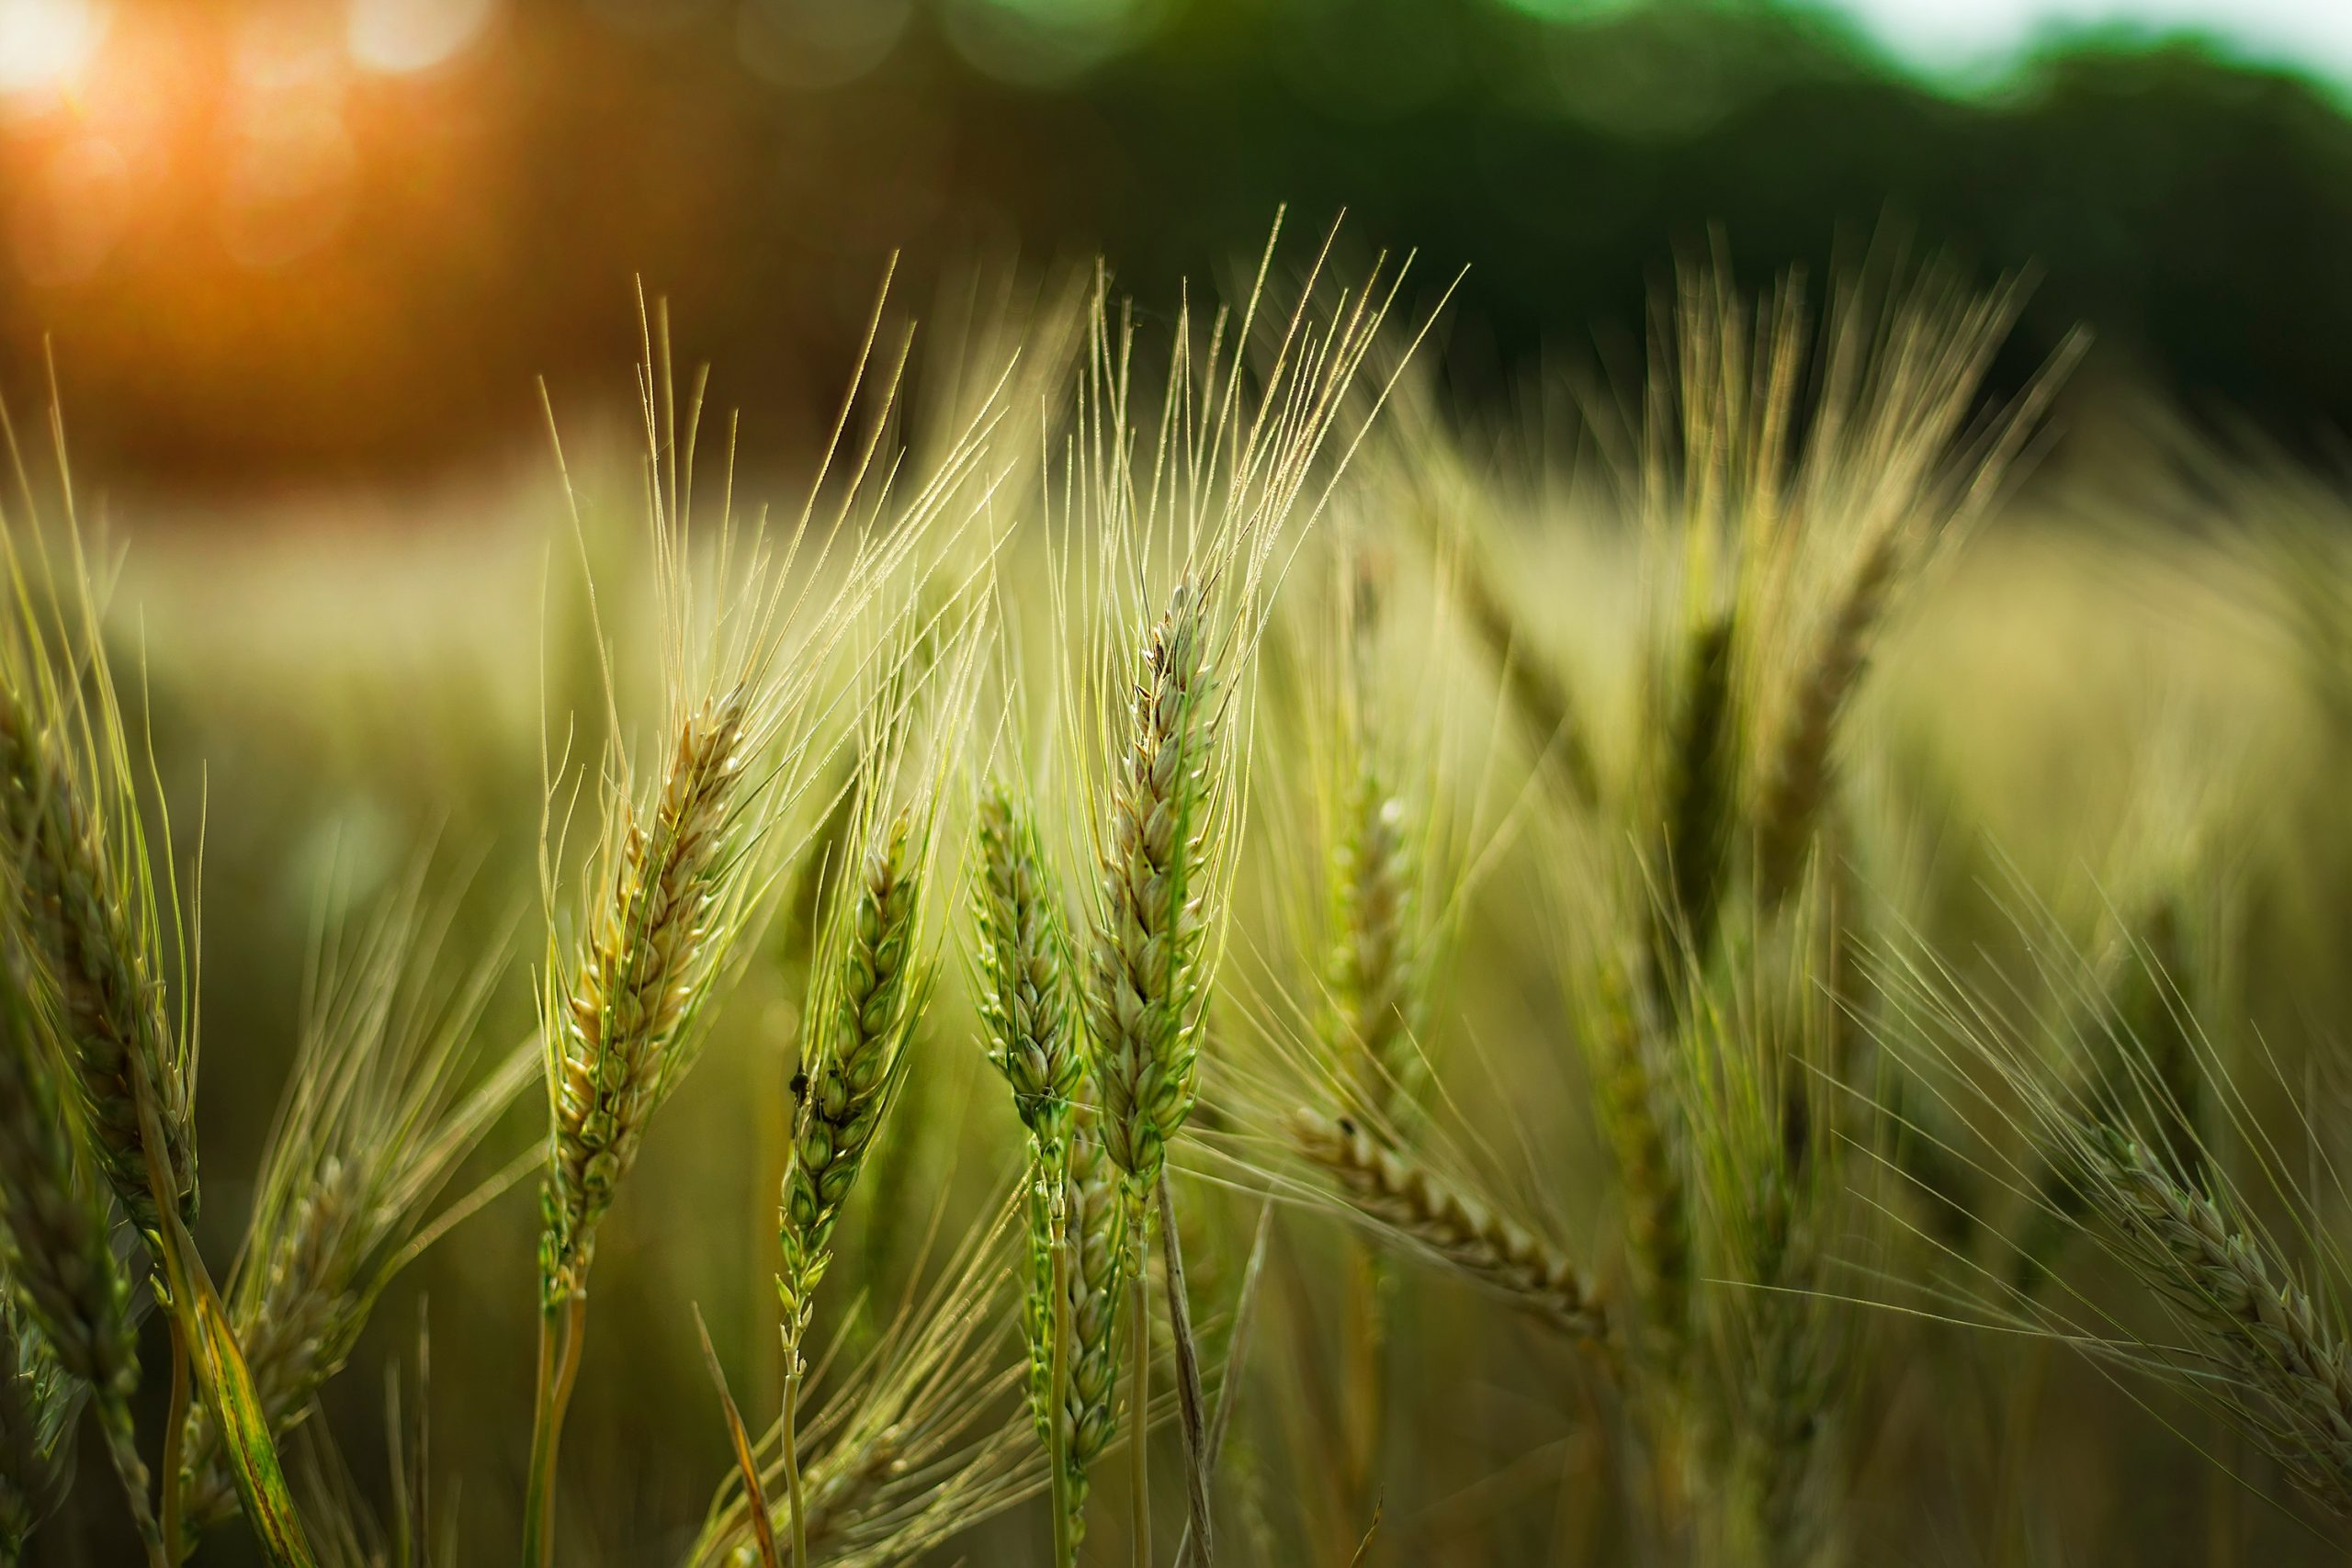 A selective focus shot of some wheat in a field